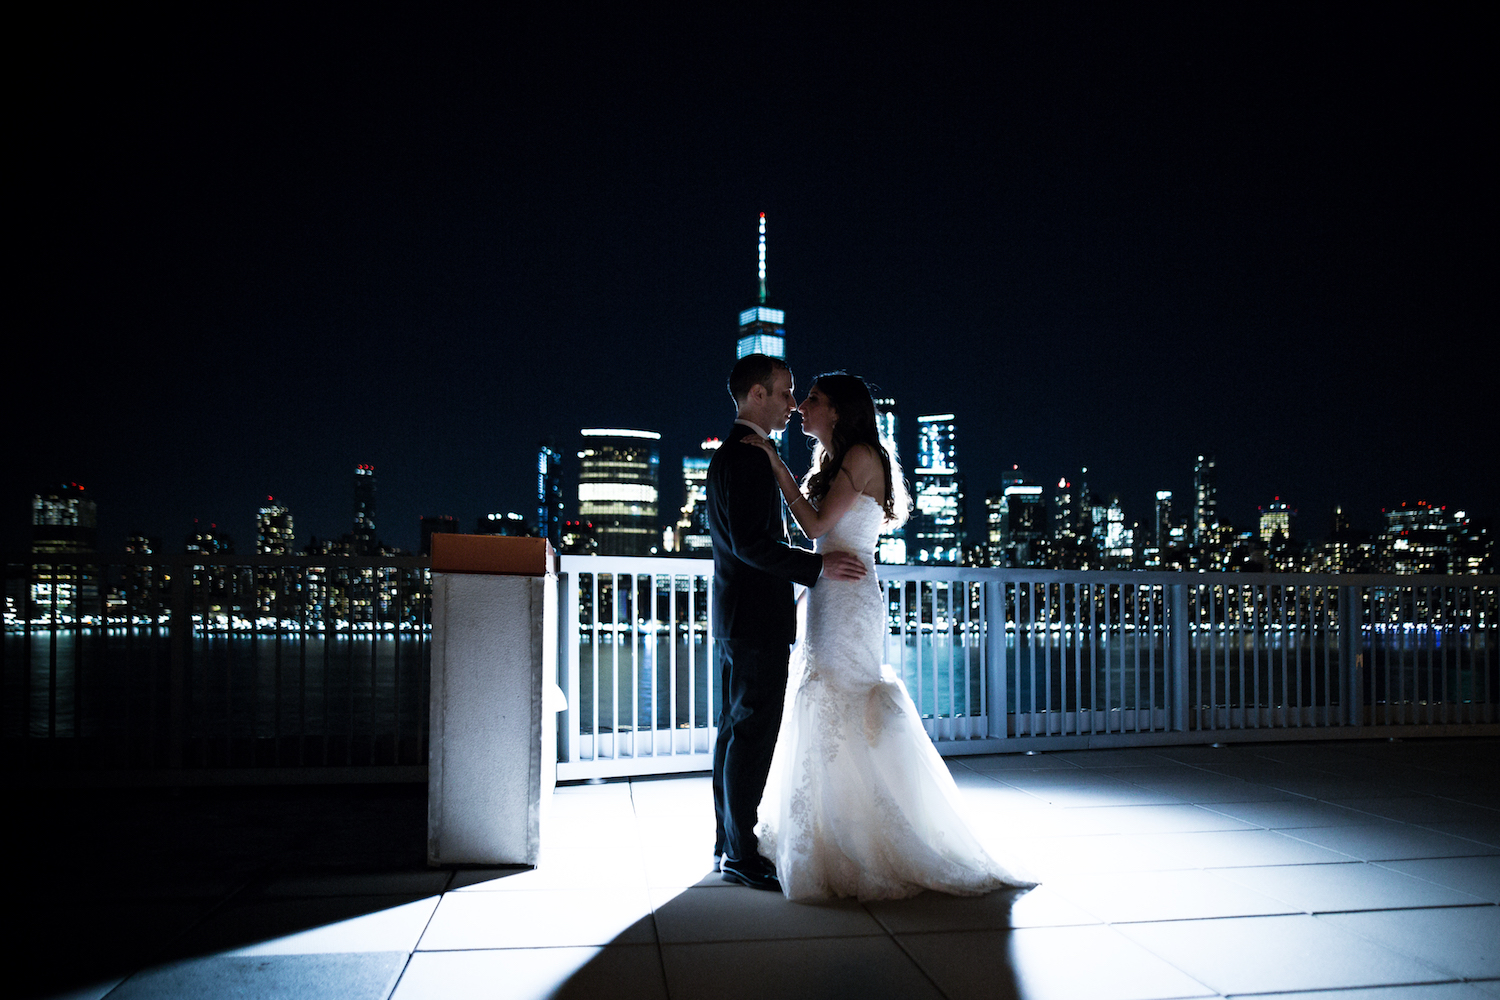 Jacqueline and Cory – Wedding Photo Highlights from Hyatt Regency on the Hudson in Jersey City, NJ